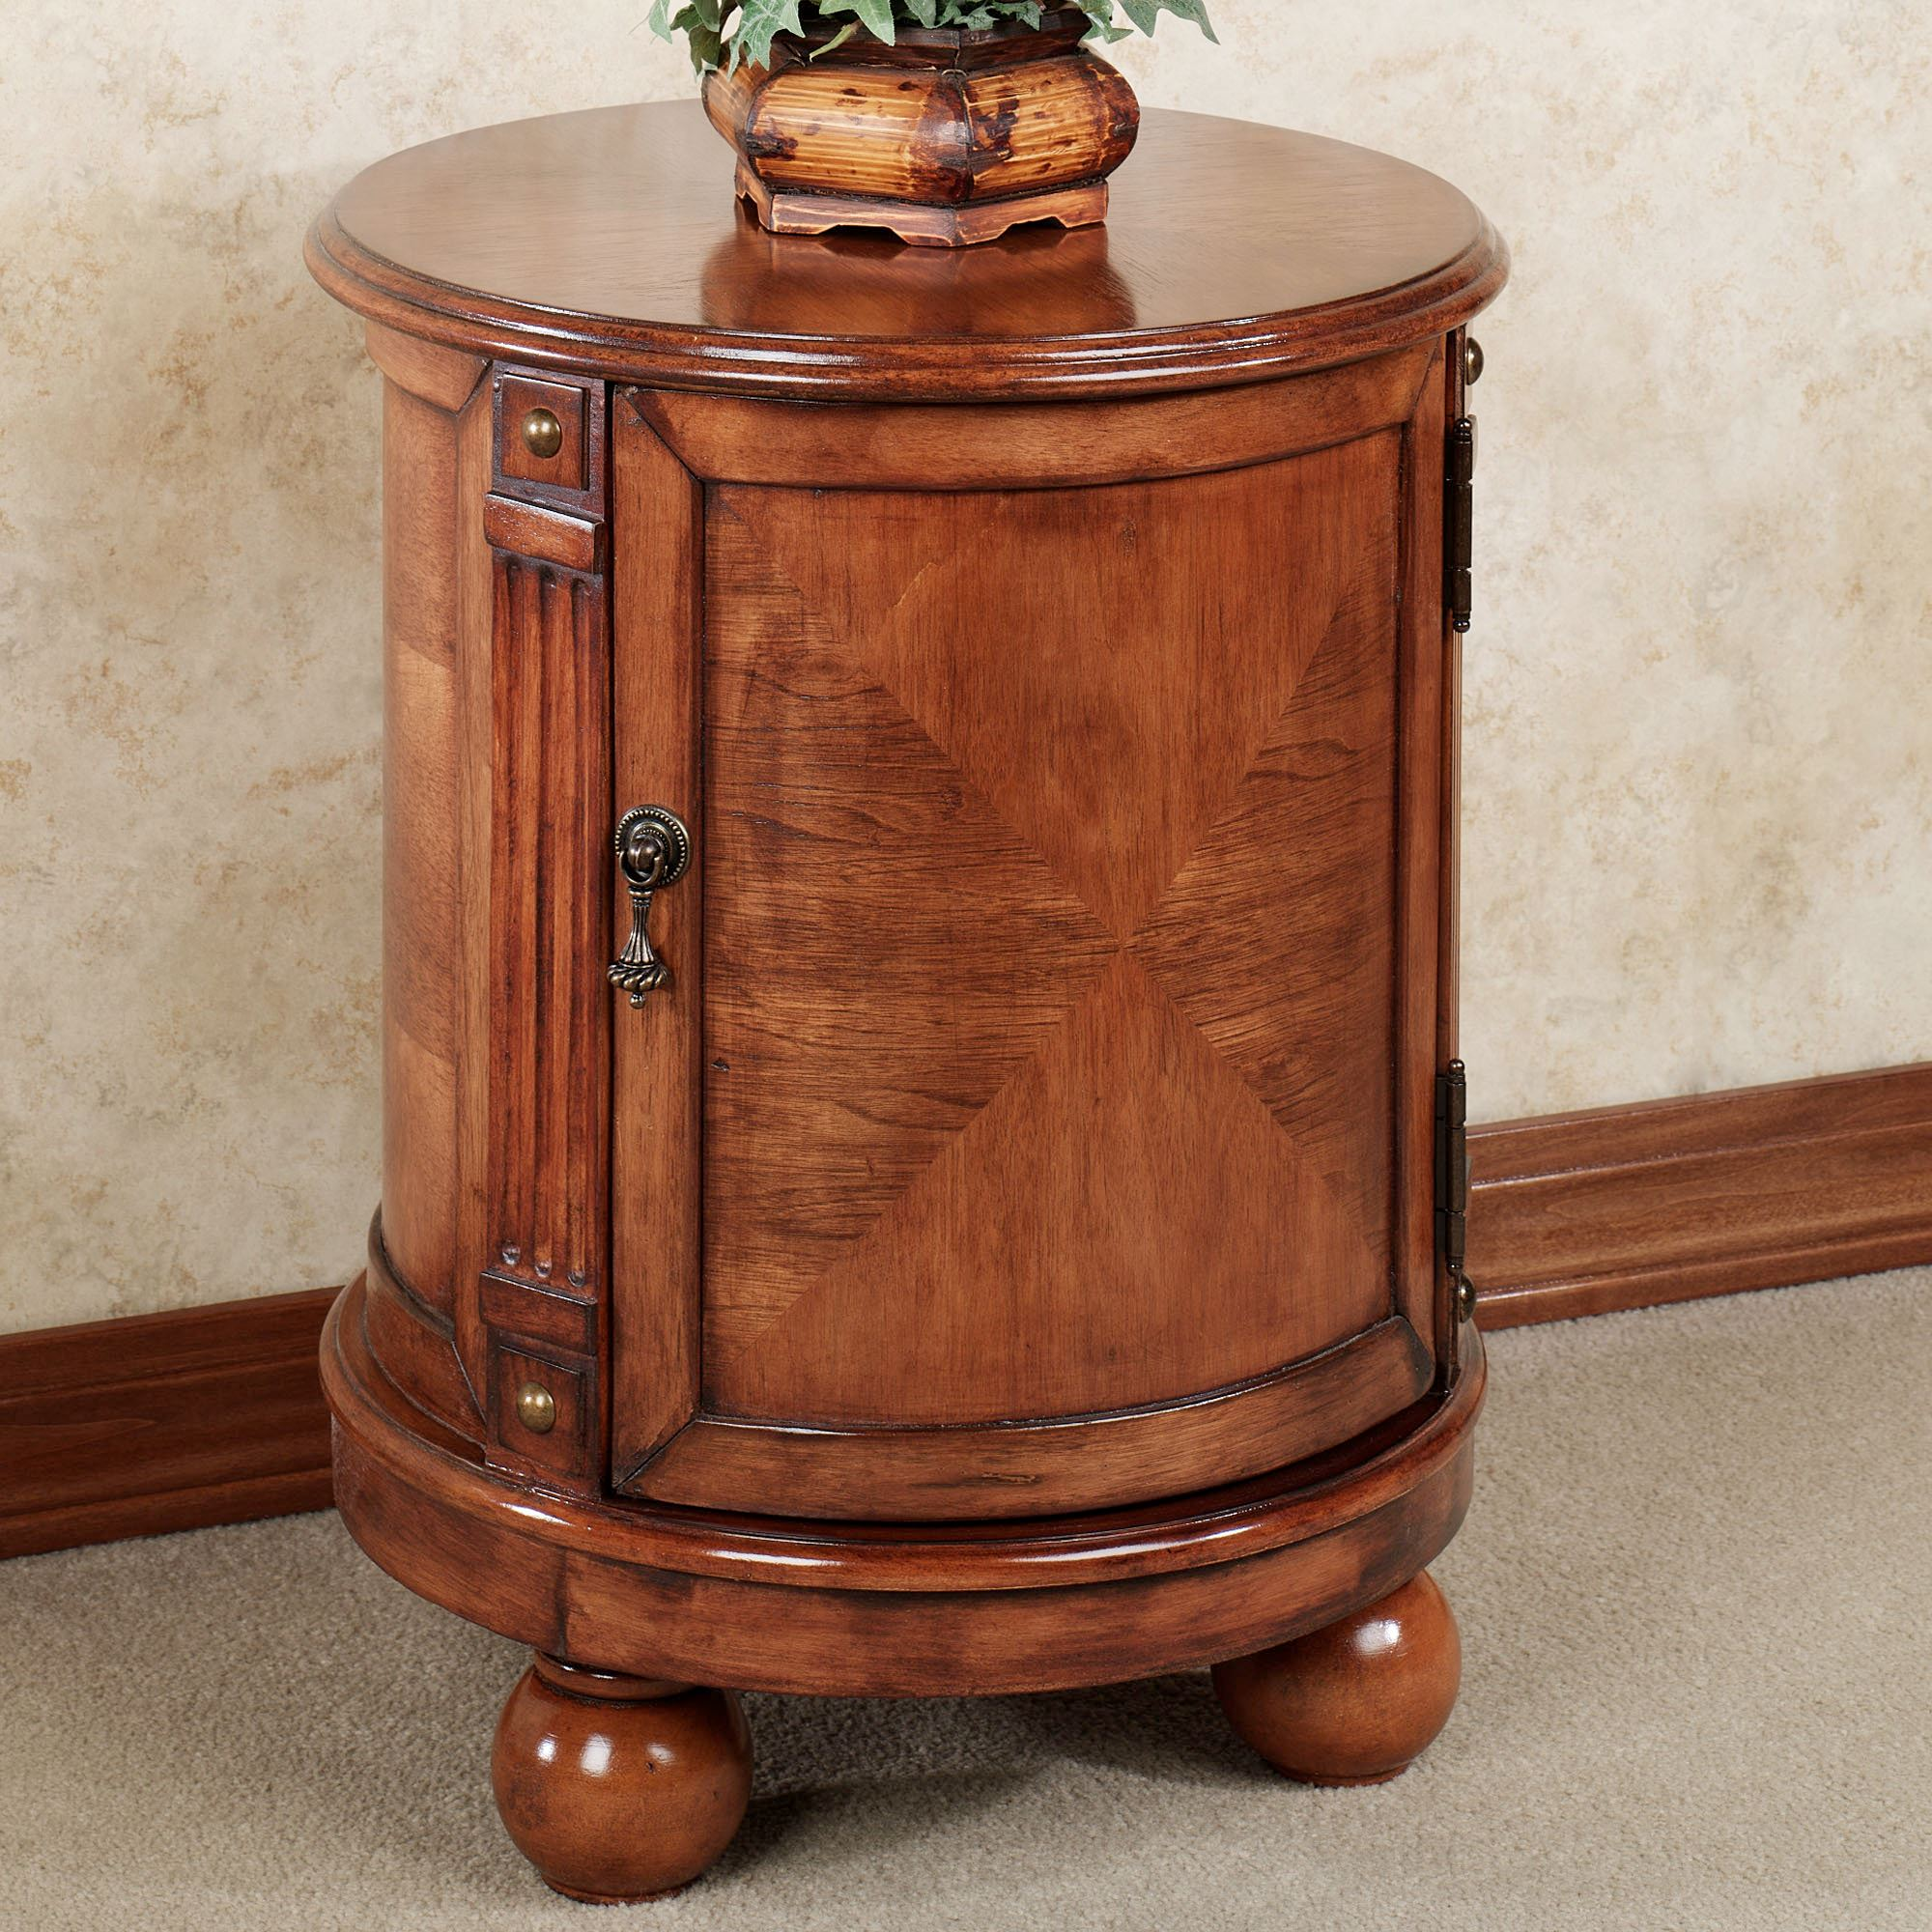 eldred round chairside accent storage chest furniture touch zoom wooden wall clock safavieh console table small tall coffee dining room buffet breakfast modern nesting side tables